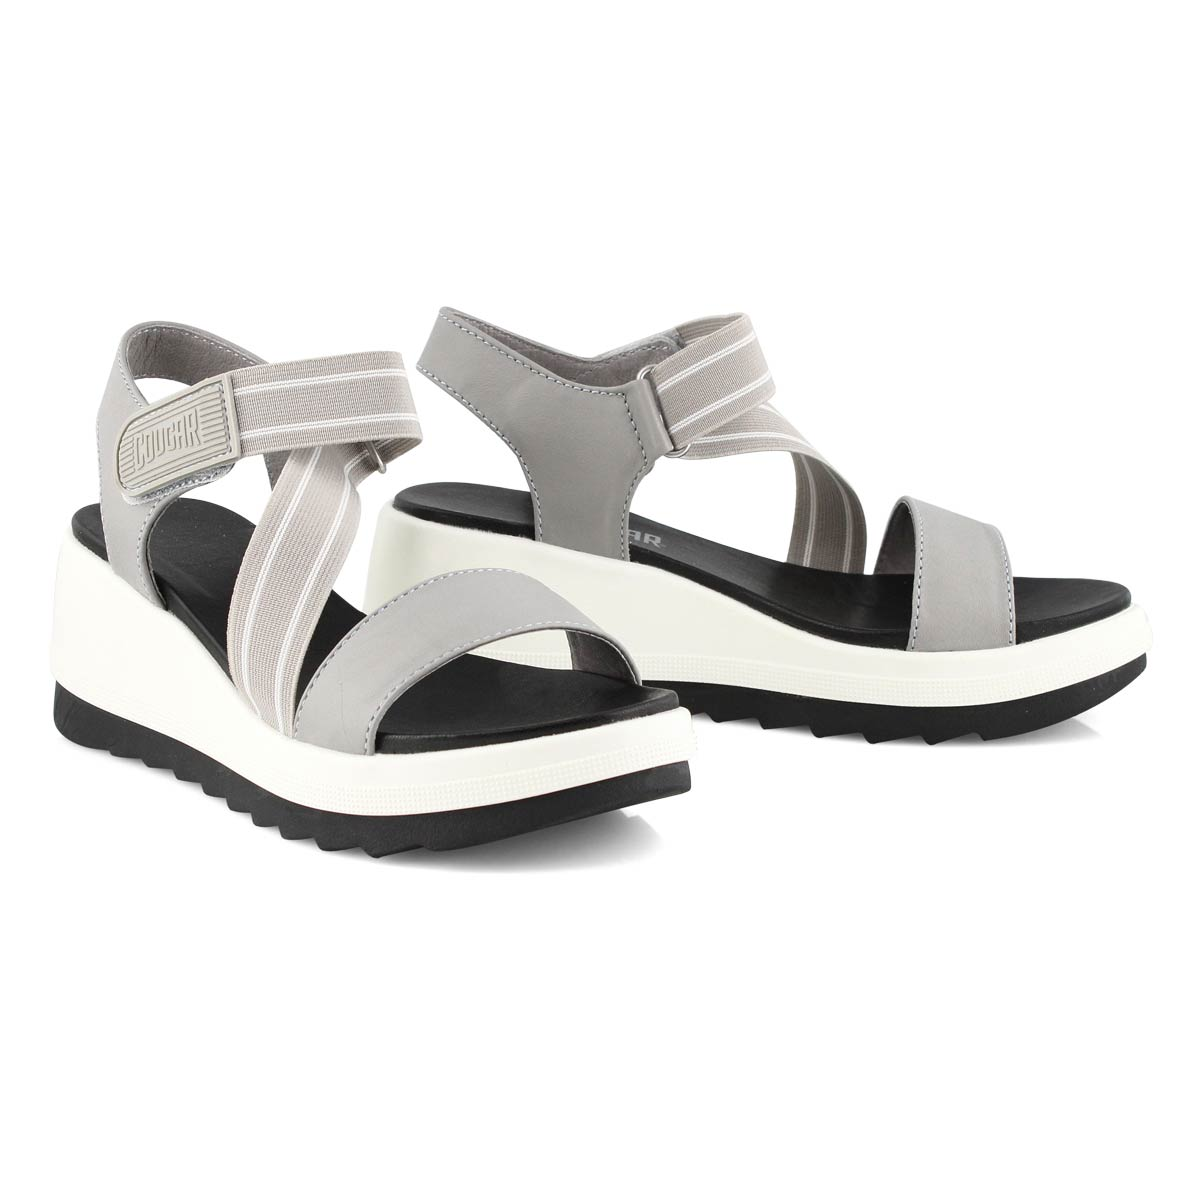 Lds Hibiscus fossil wedge sandal